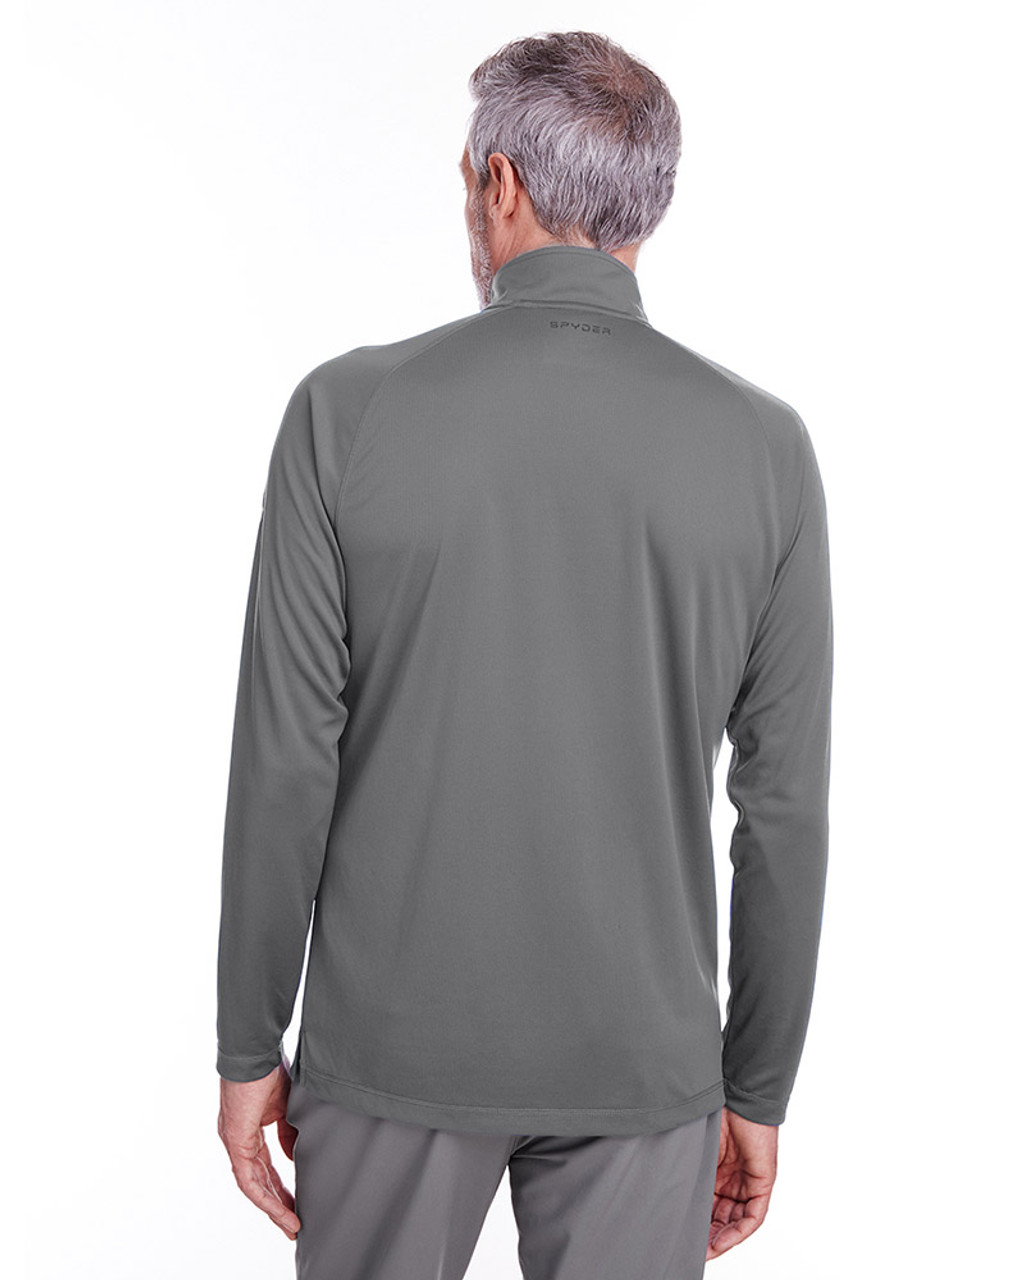 Polar - back, S16797 Spyder Men's Freestyle Half-Zip Pullover Sweatshirt | Blankclothing.ca